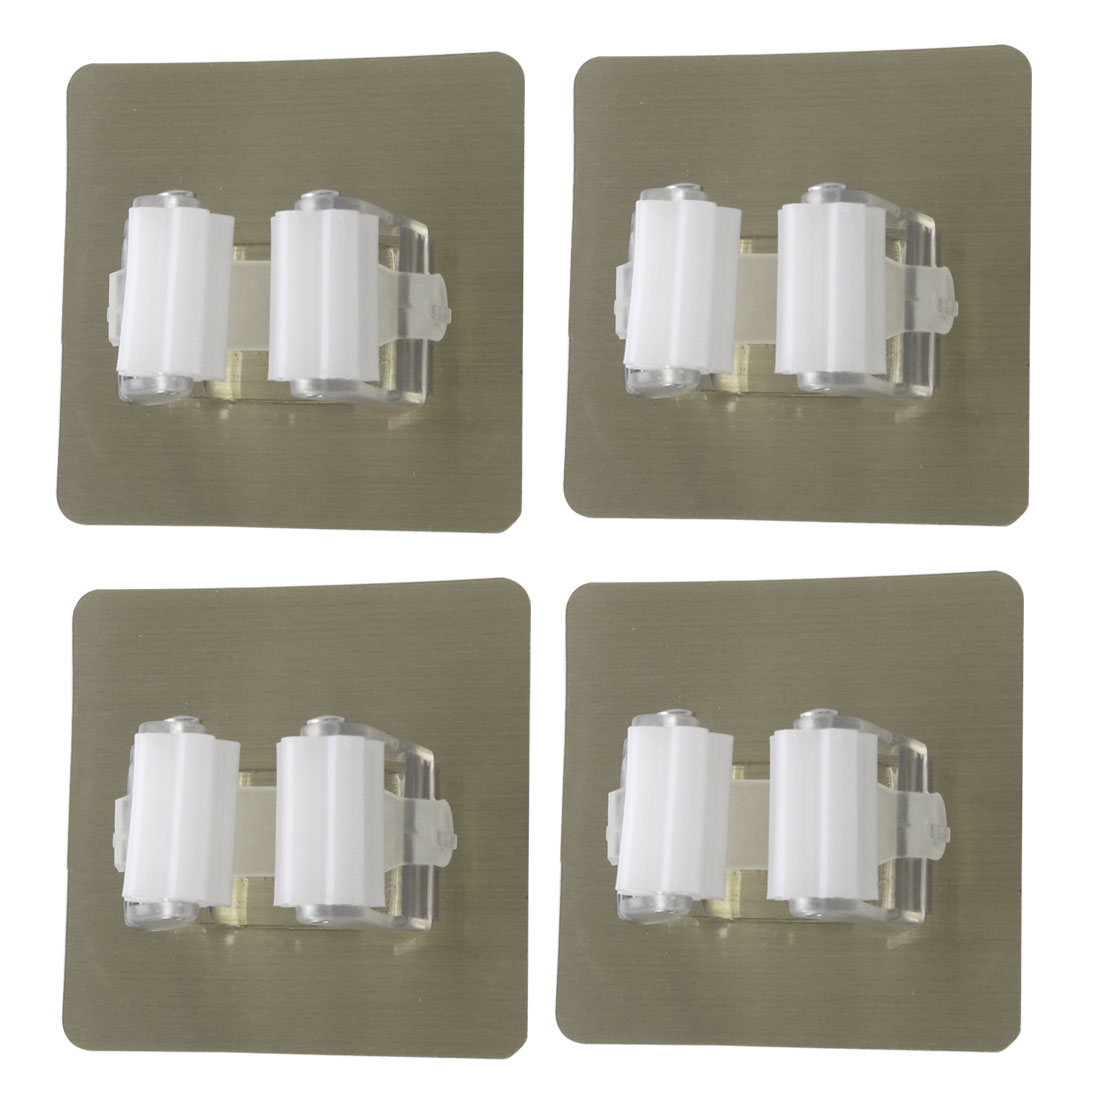 4pcs Mop Clip Holder Household Washroom Self Stick Broom Mop Holder White